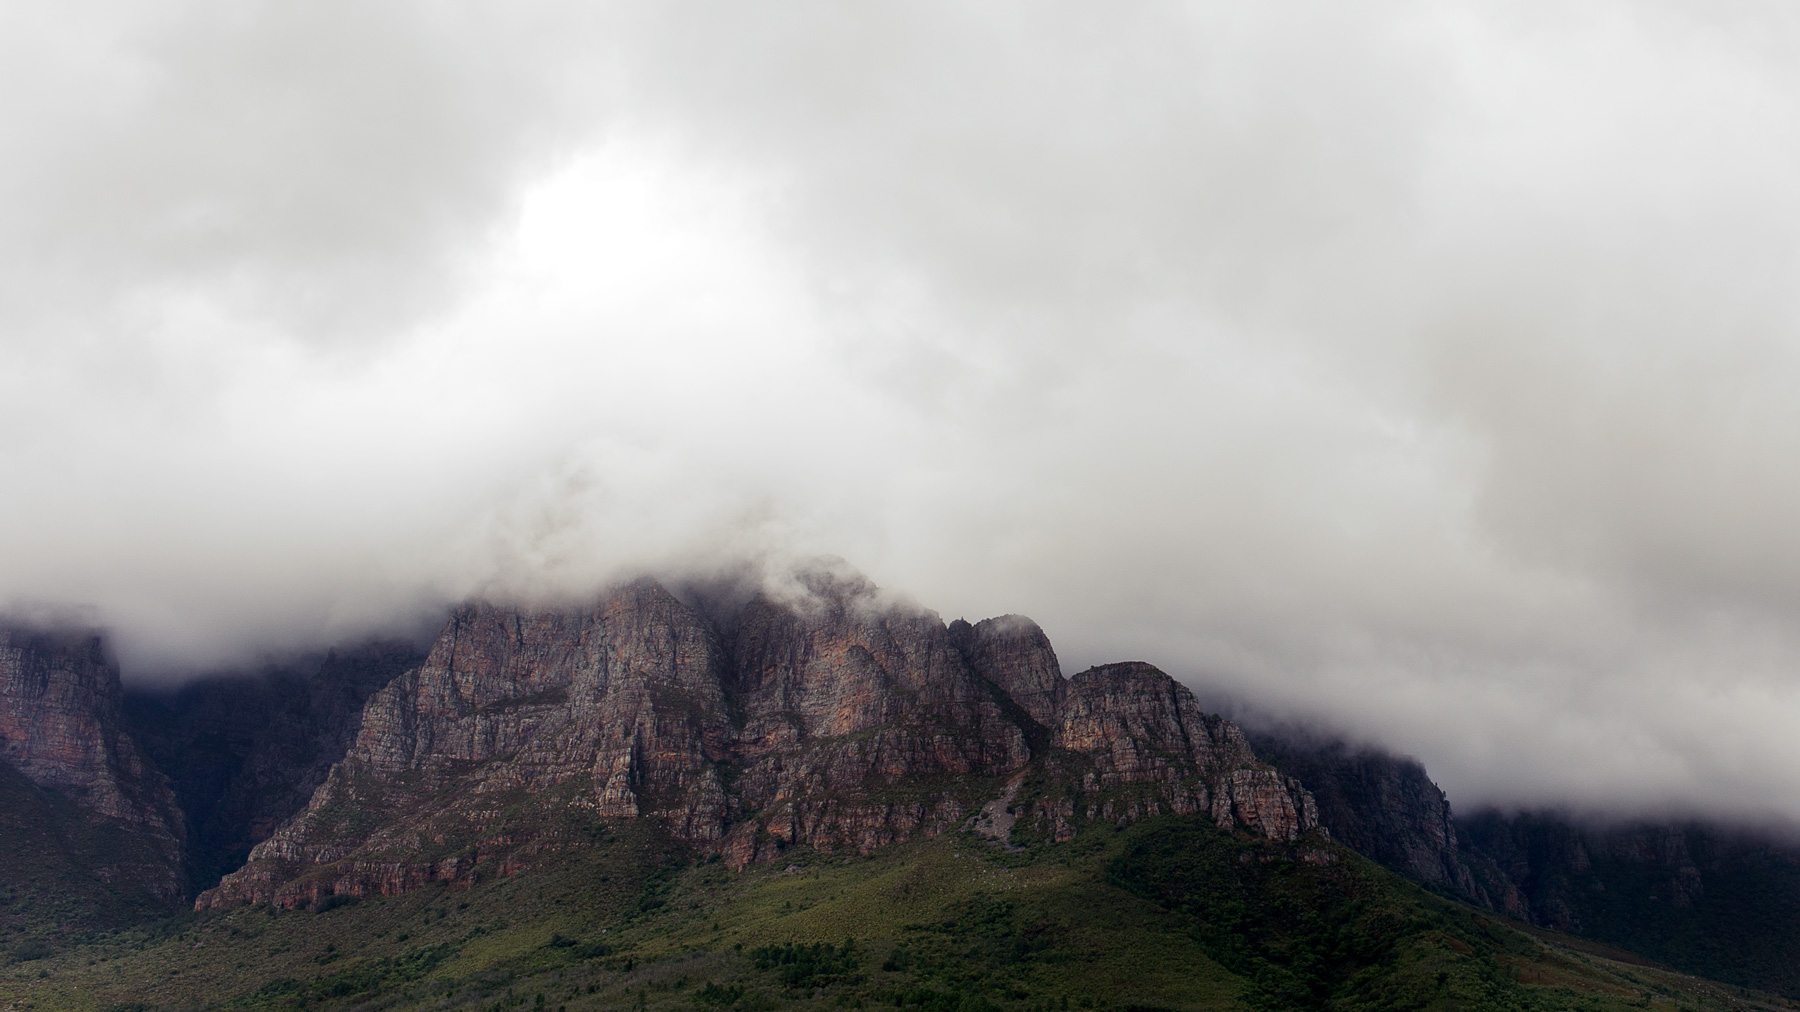 South Africa - Mountains # 1